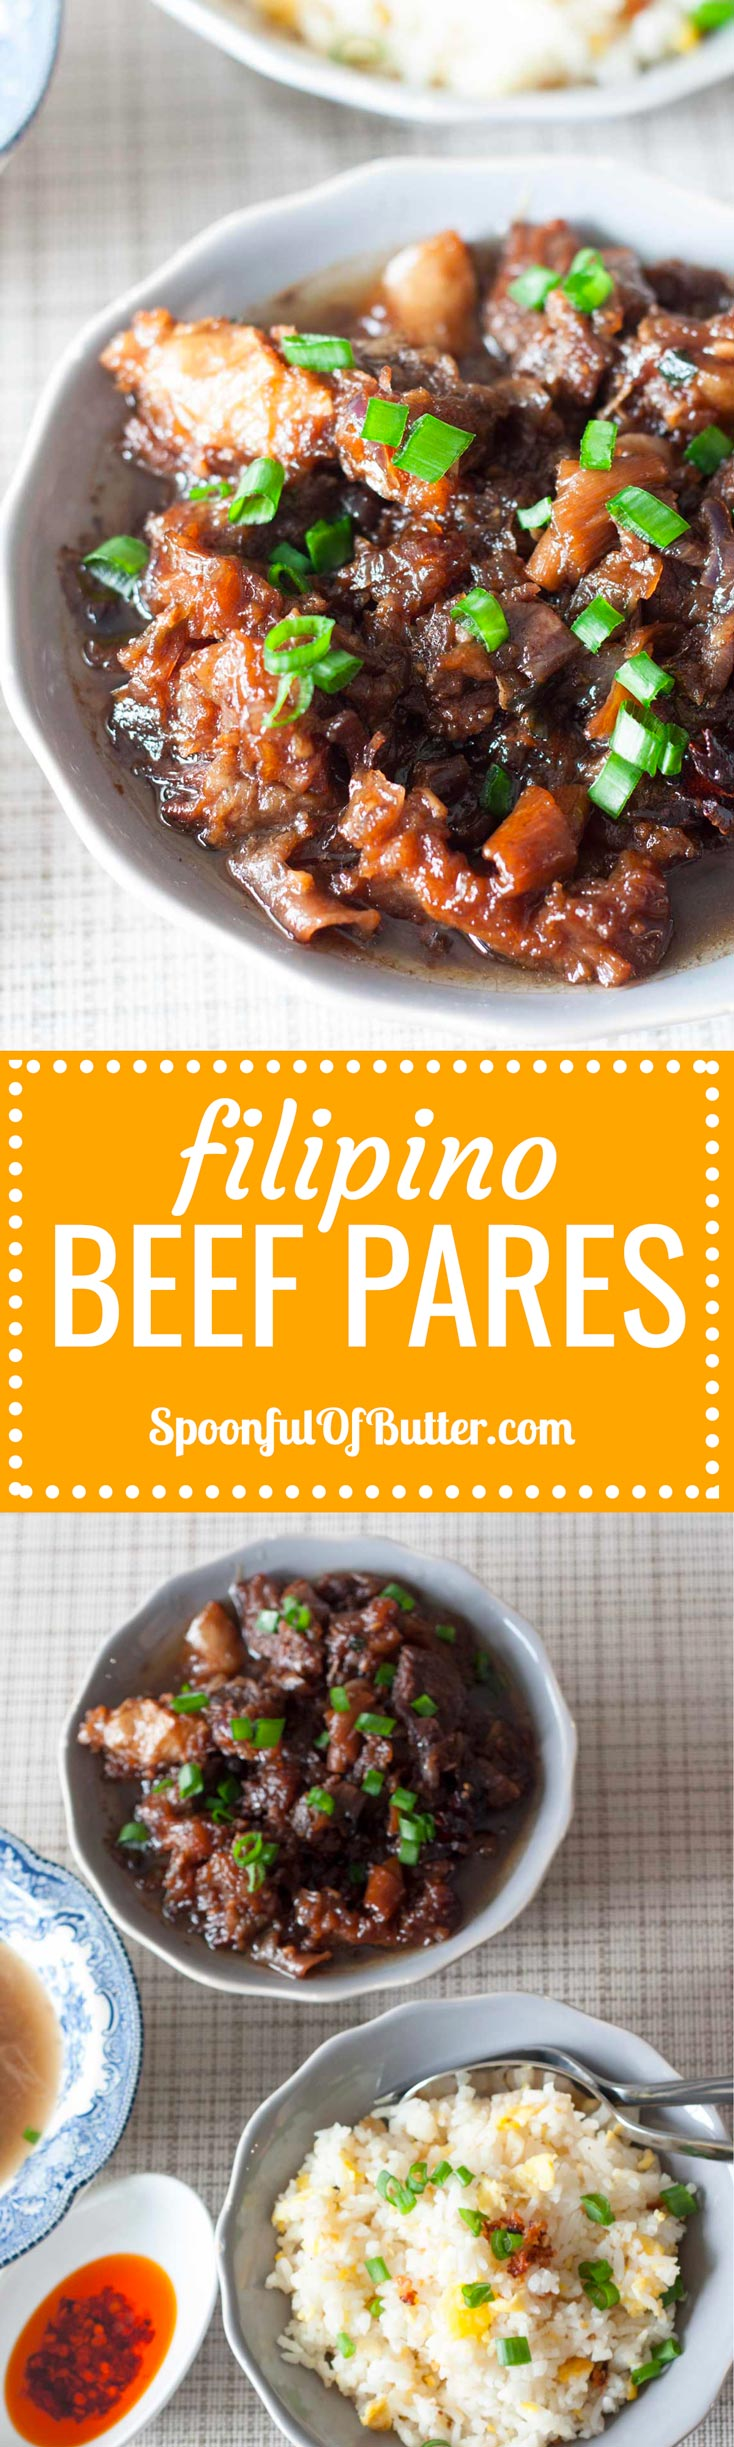 Beef Pares is a popular Filipino comfort food with Chinese influence. The use of star anise gives this dish a unique and delicious taste. Cuts with lots of litid (tendon) are used to achieve a texture that is tender and sticky at the same time. | www.SpoonfulOfButter.com